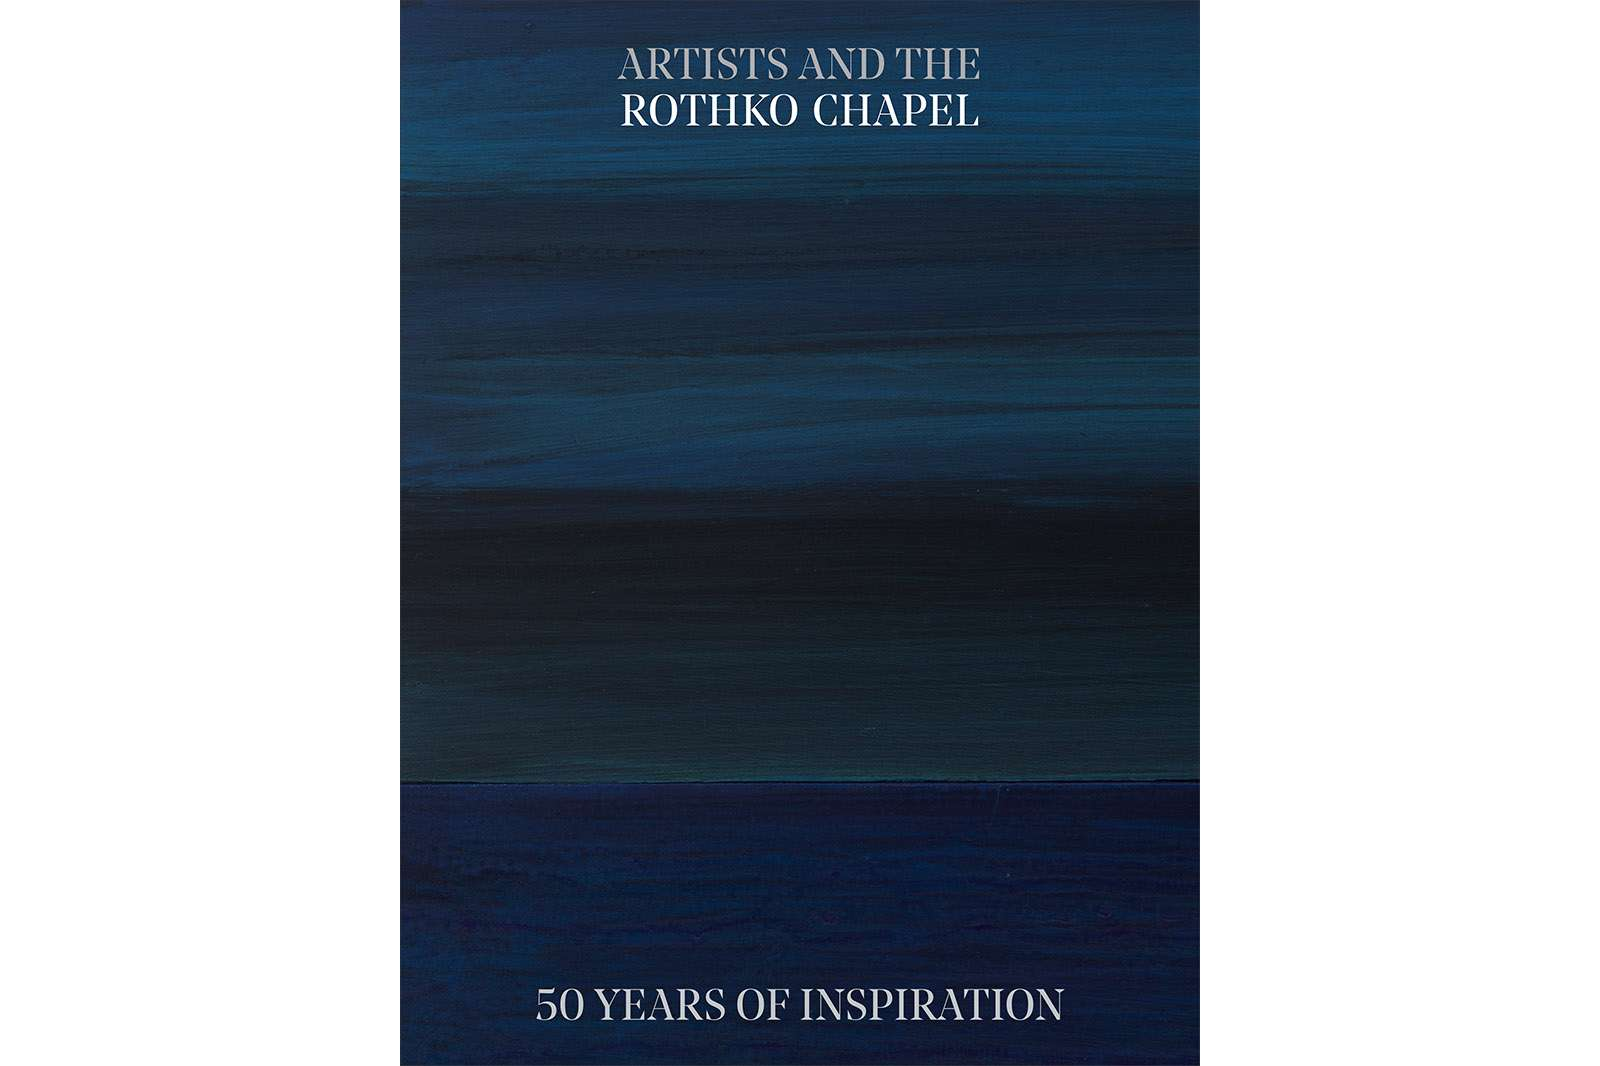 Artists and the Rothko Chapel: 50 Years of Inspiration. Edited by Frauke V. Josenhans. Published by the Moody Center for the Arts, distributed by Yale University Press. (2021)